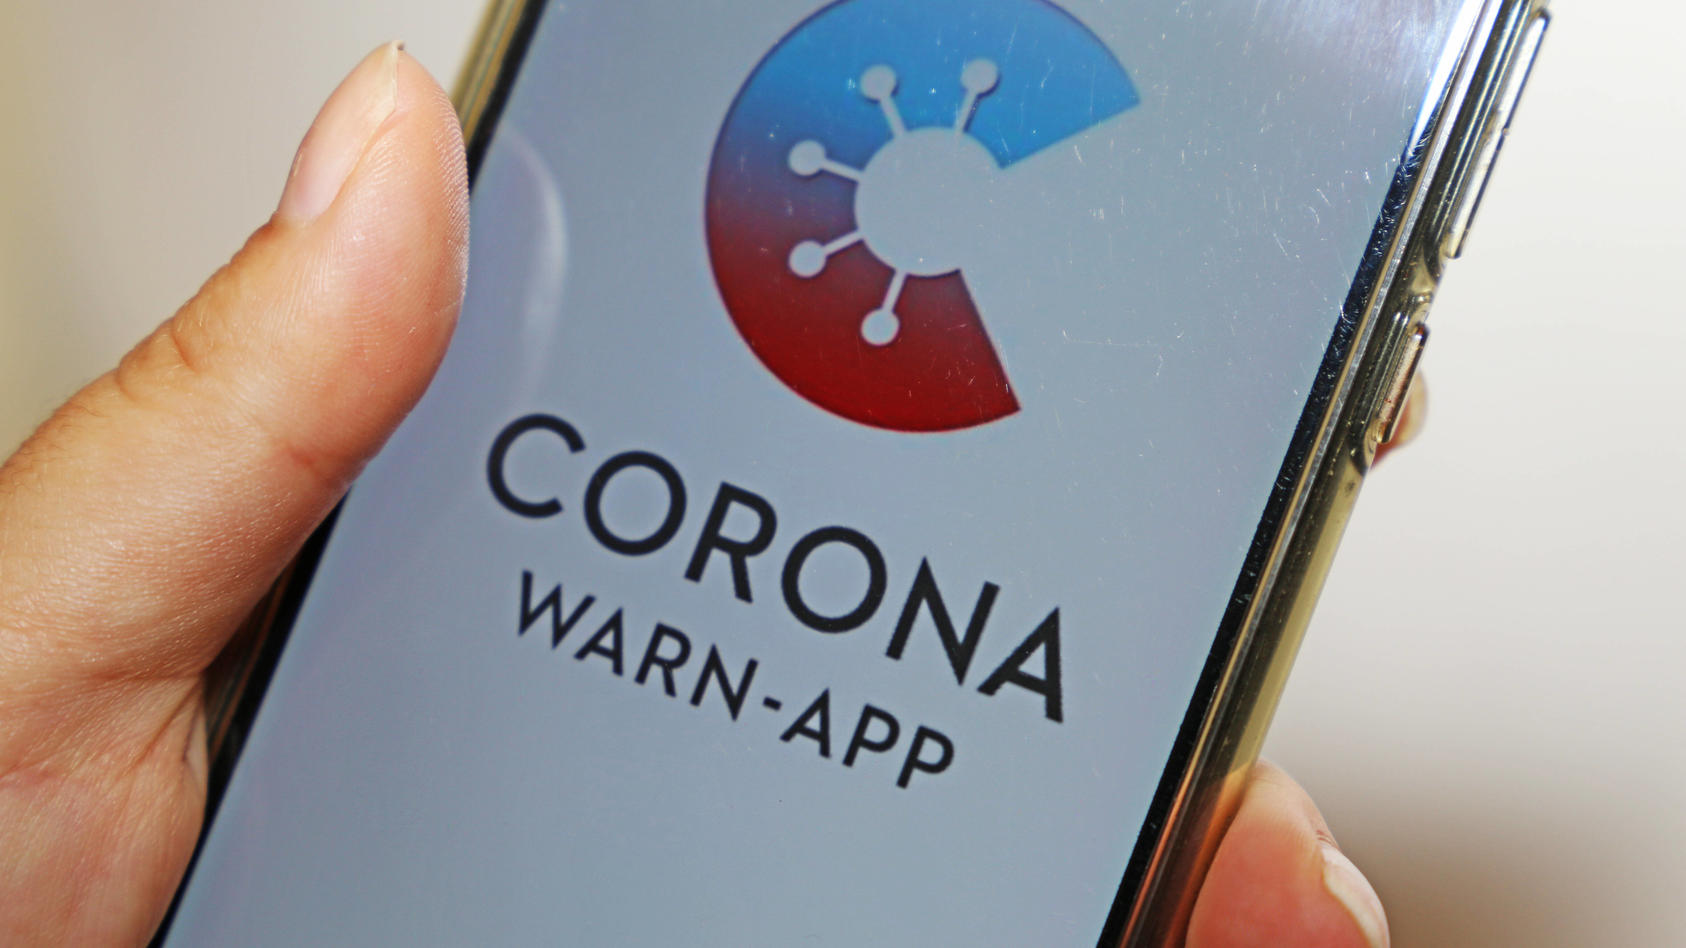 Corona-Warn-App der Bundesregierung *** Corona Warn App of the Federal Government Copyright: xx